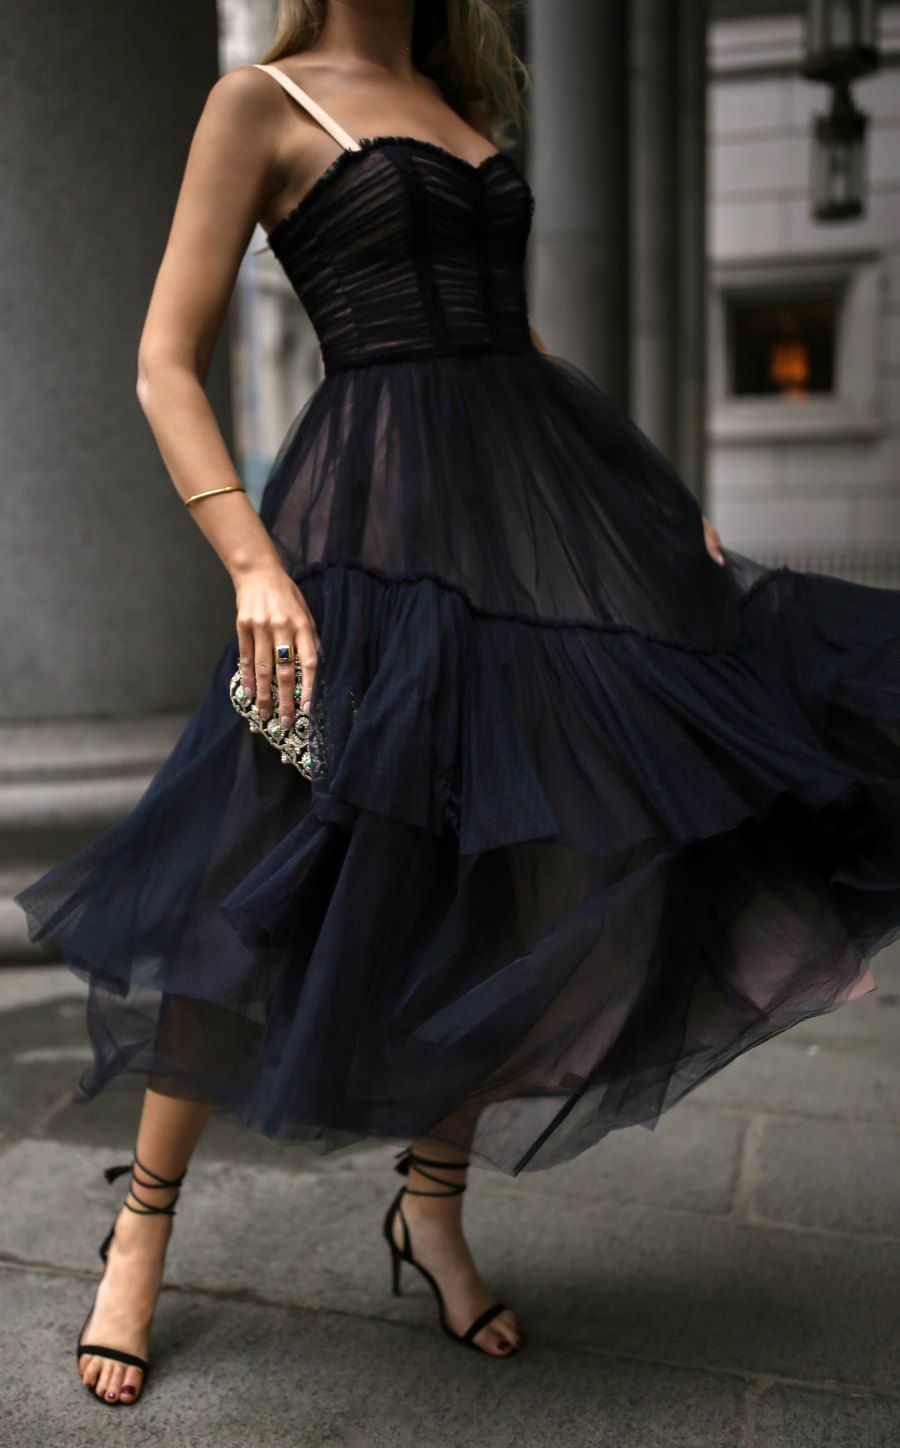 What To Wear For A Charity Gala Black Lace Tulle Bodice Style Flowy Midi Dress Black Strappy Ankle Wrap Heels Embell Fashion Dazzling Dress Modest Dresses [ 1448 x 900 Pixel ]